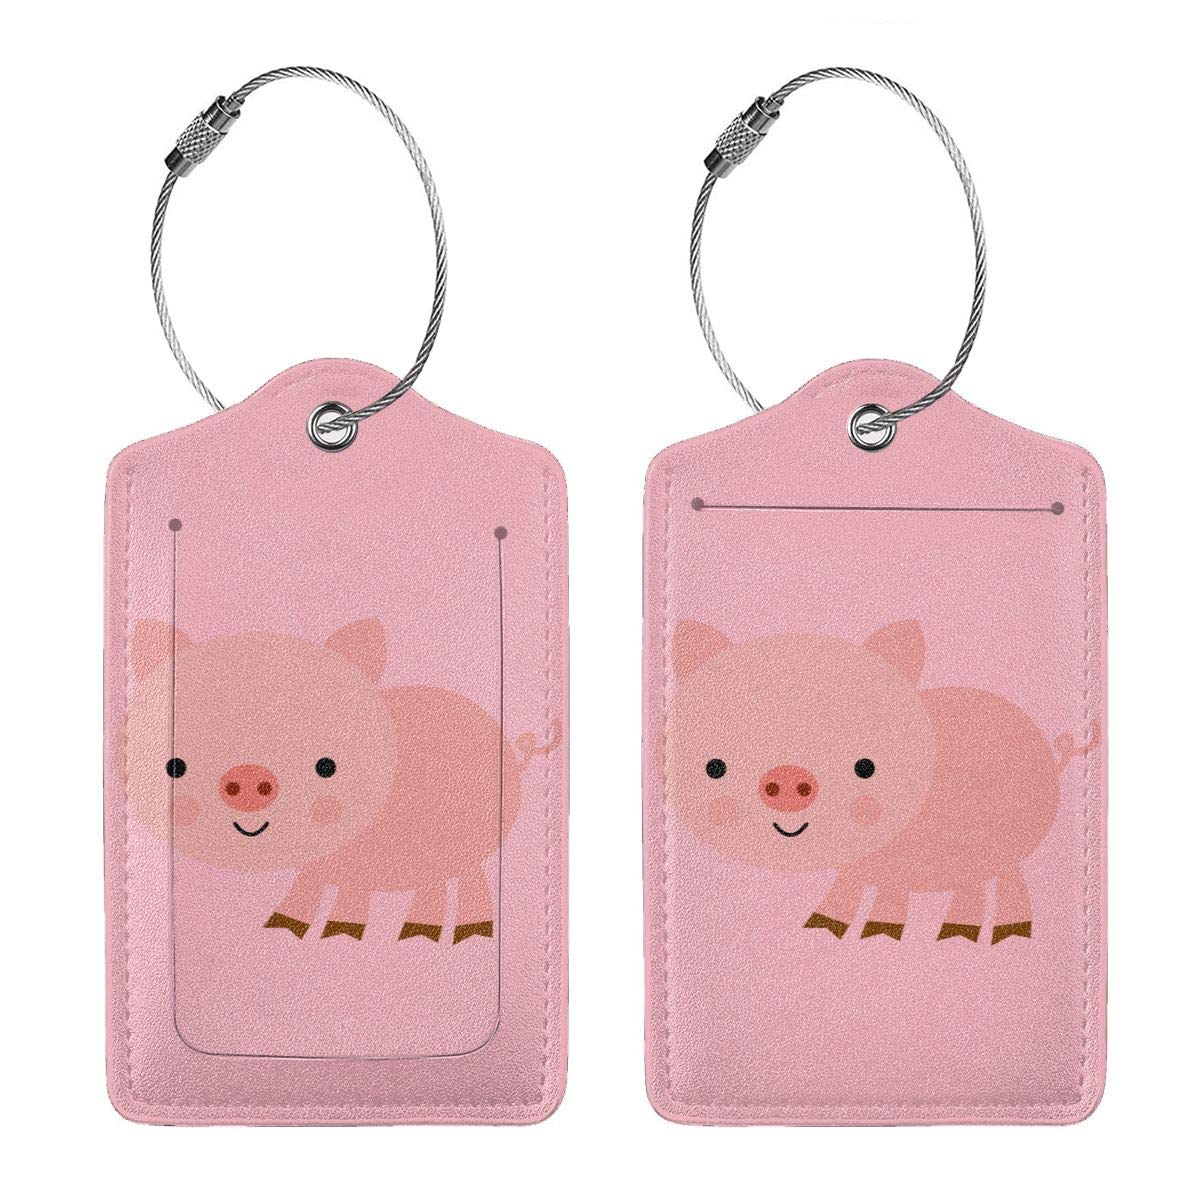 Cute Pink Pig Leather Luggage Tags Suitcase Tag Travel Bag Labels With Privacy Cover For Men Women 2 Pack 4 Pack